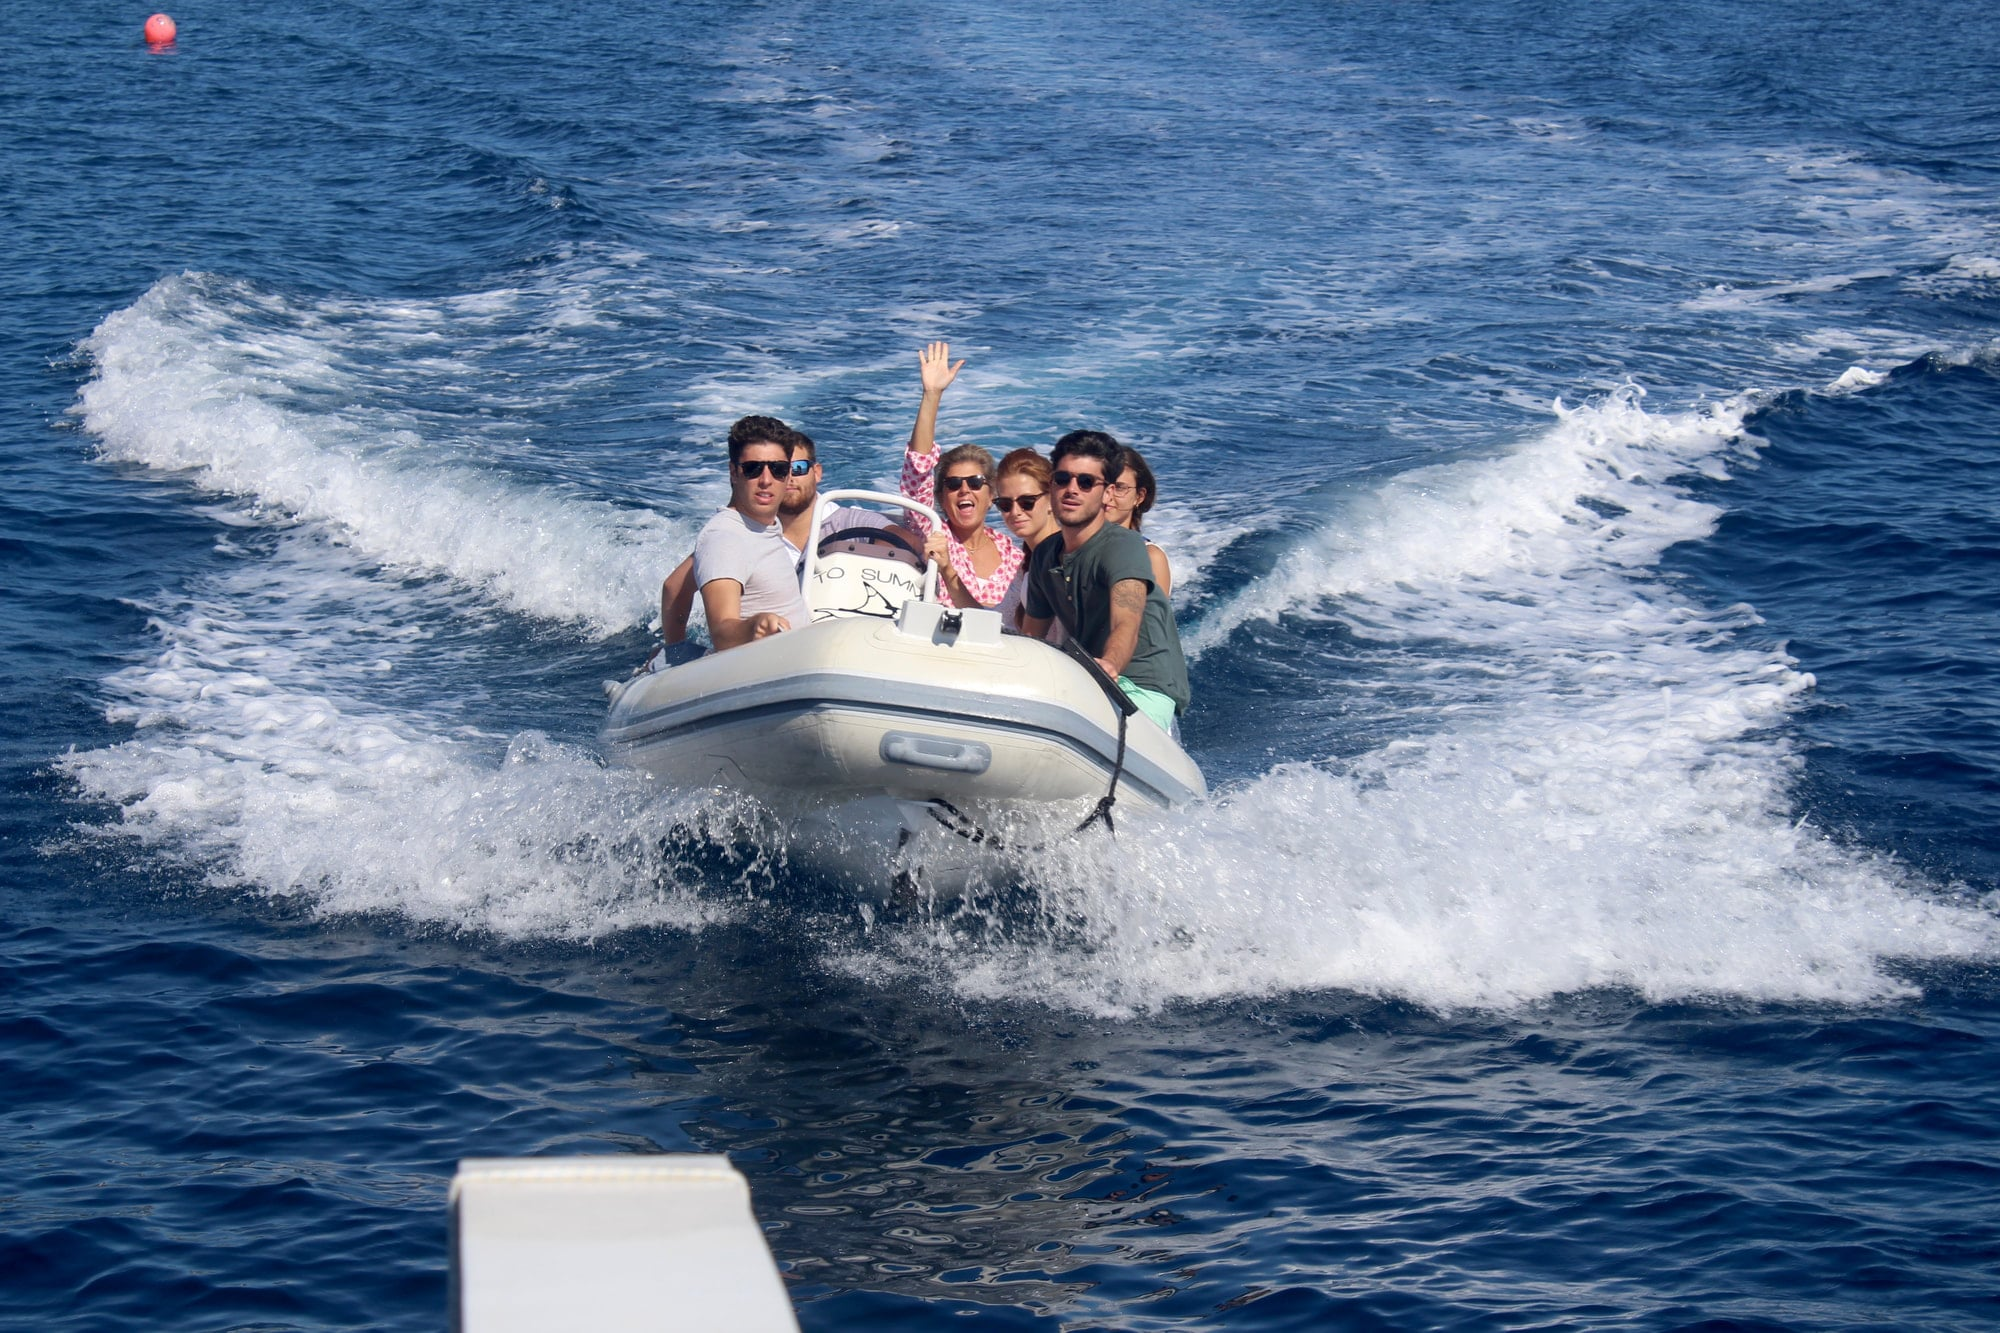 Lagoon 52F (SUMMERTIME - with flyboard and jet ski) Lagoon 52F Summertime - 42